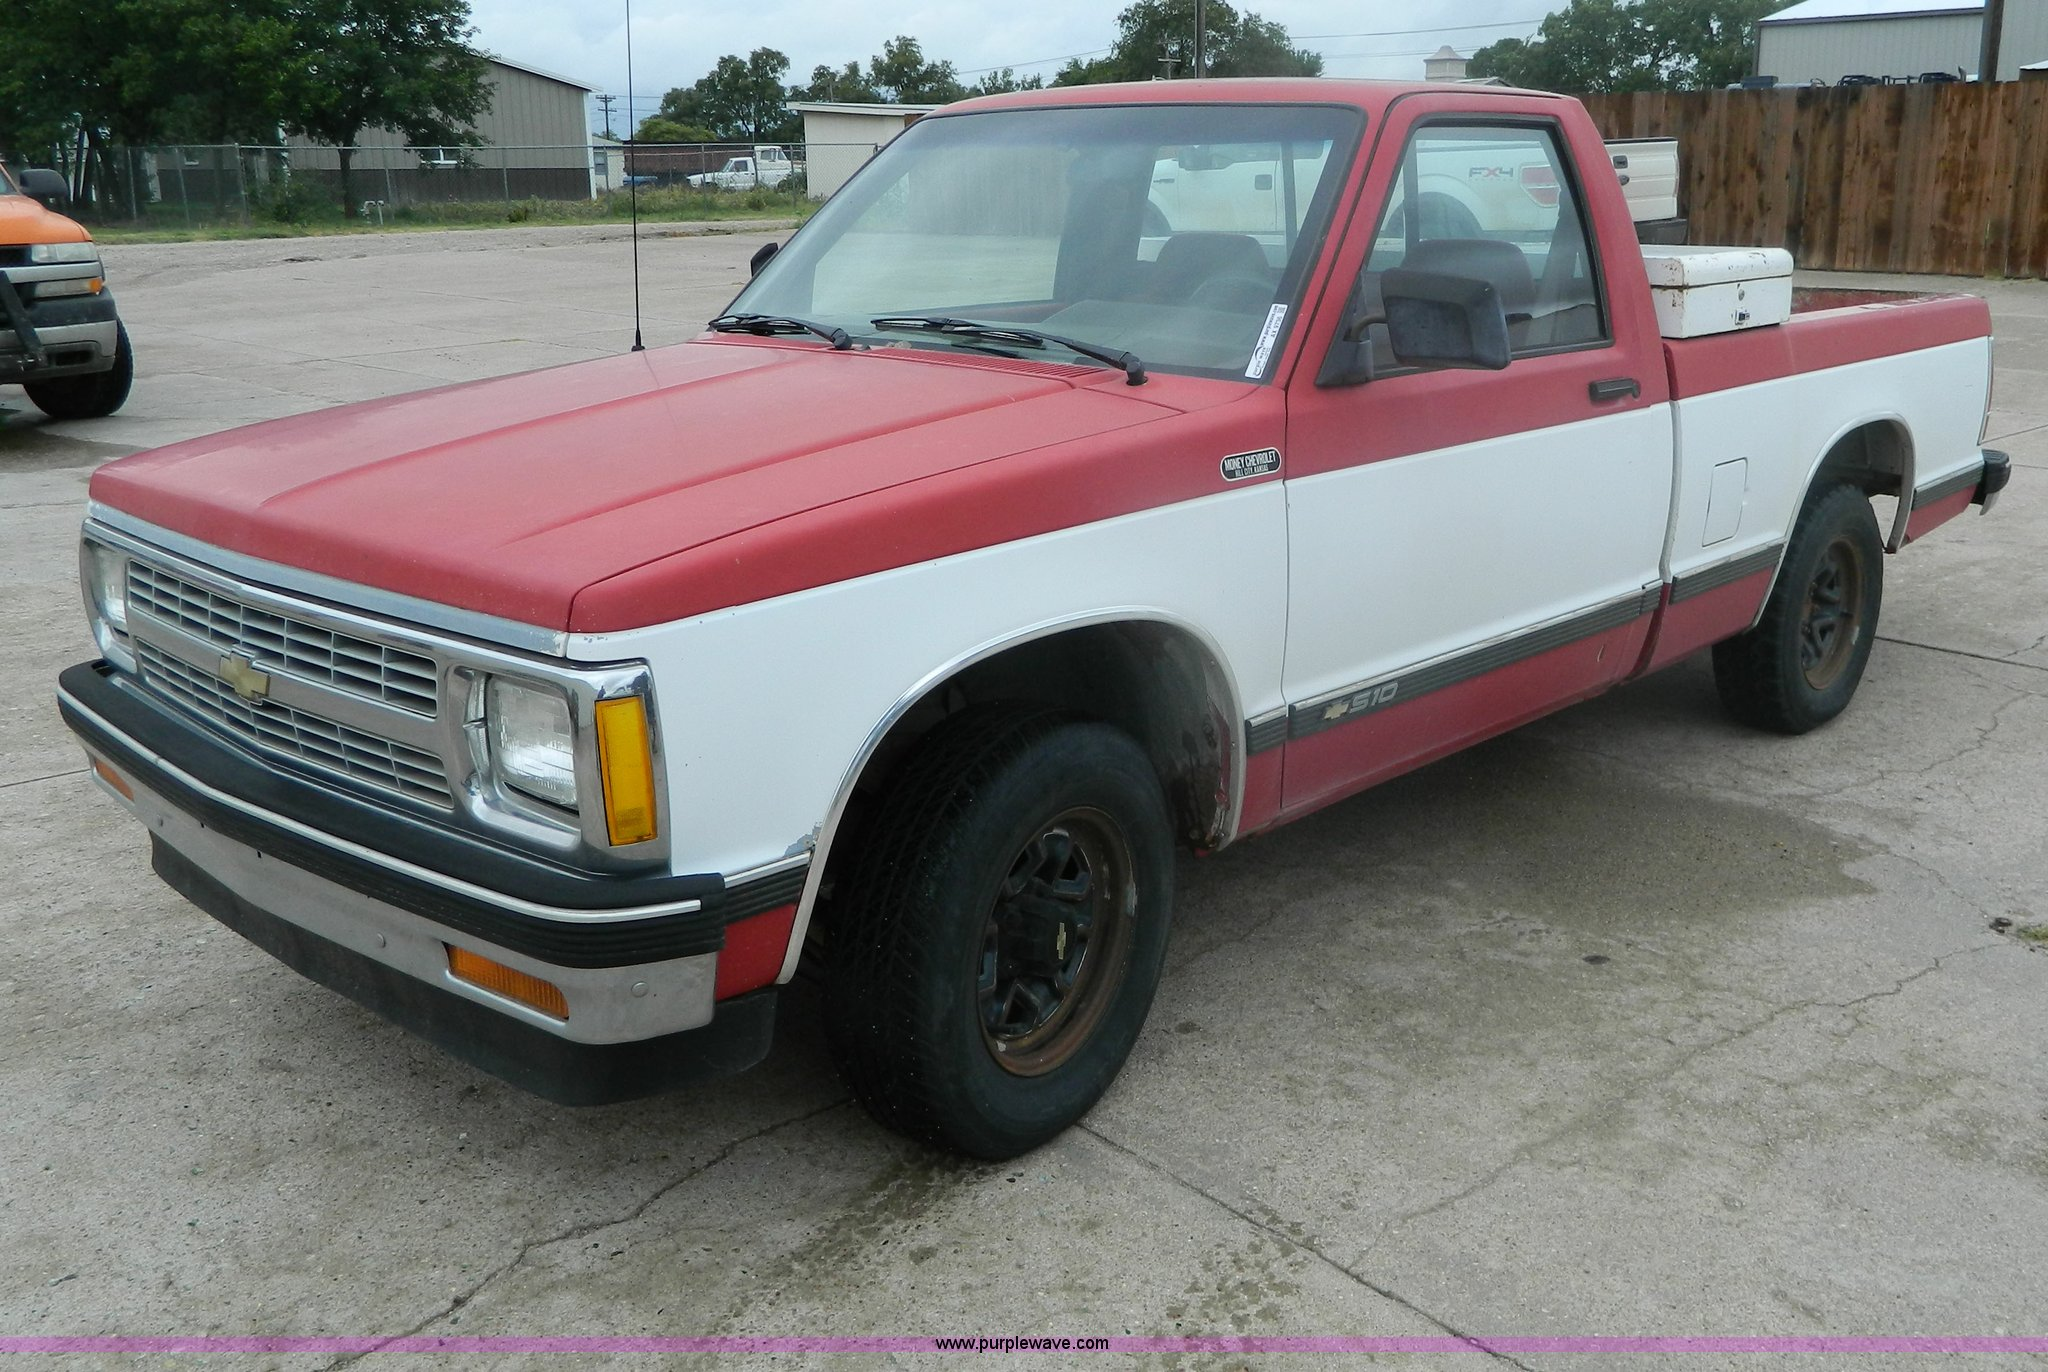 1992 Chevrolet S10 Pickup Truck In Hill City Ks Item Ax9736 Sold Purple Wave